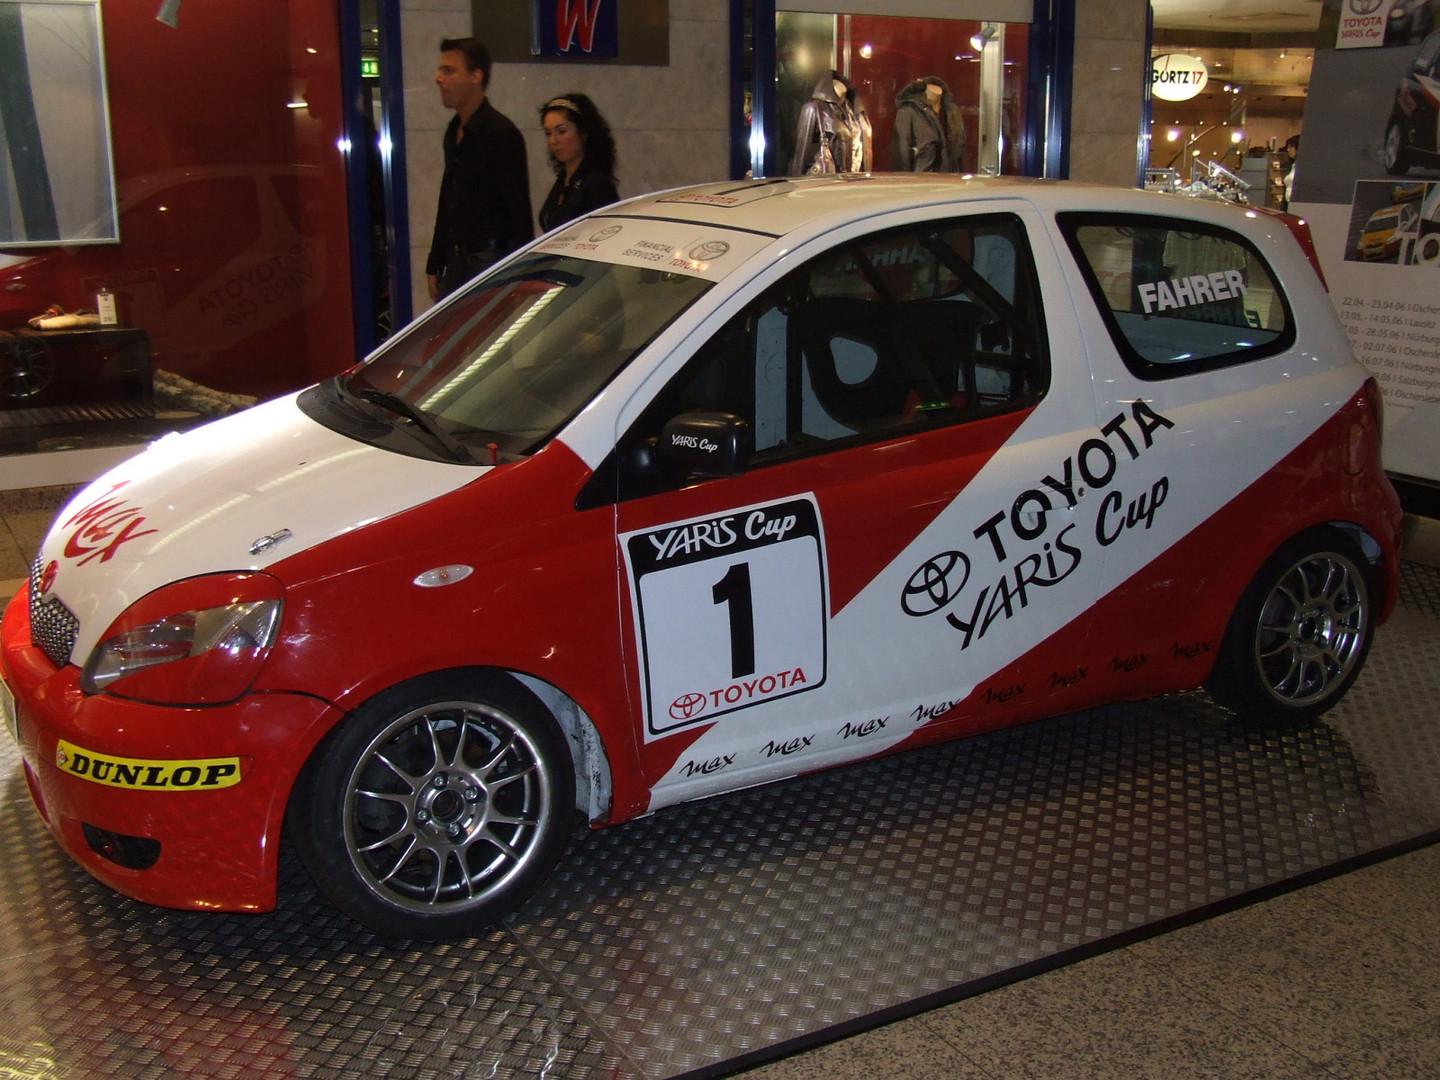 Yaris Cup 2006 Modell